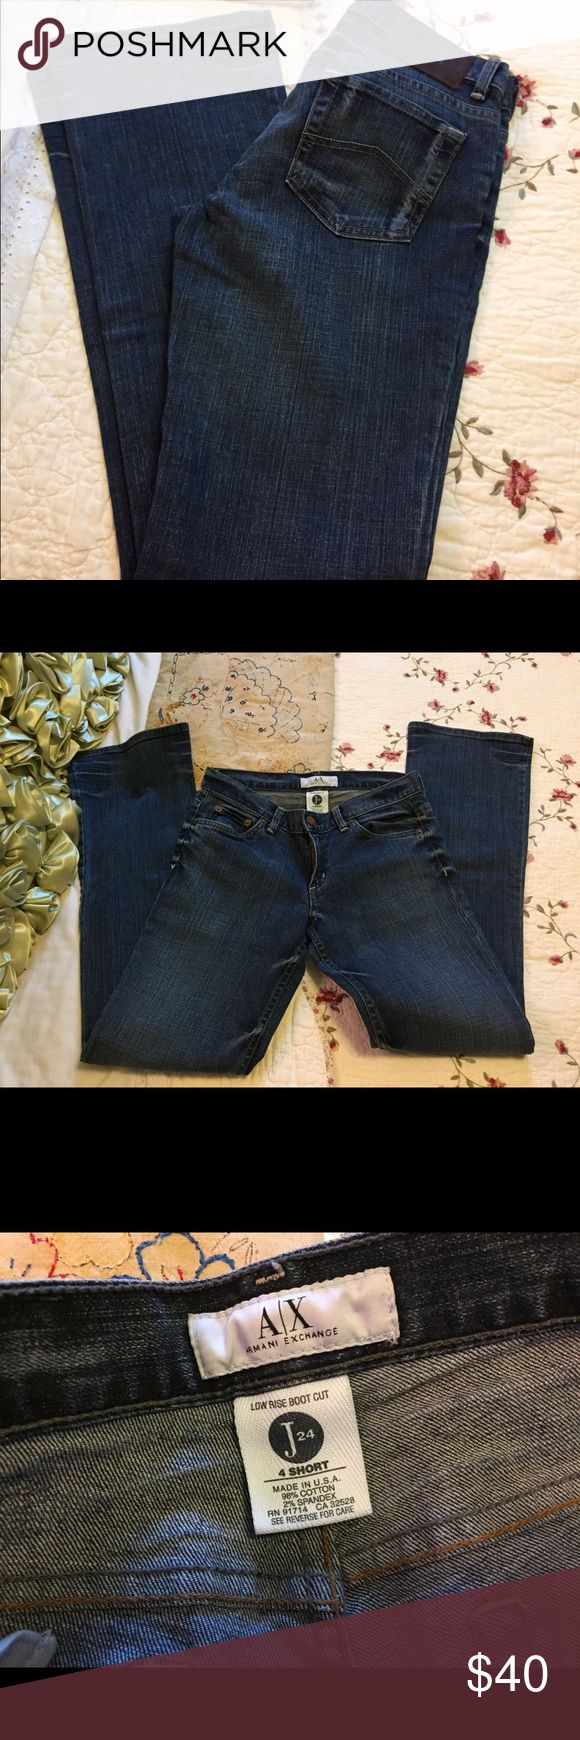 """Armani Exchange Low Rise Boot Cut Jeans J24 Very good clean condition.  Size 4 short. USA made. 98% cotton/2% spandex.  Waist up to 28"""". Rise 7.5"""", inseam 31""""! 5 pocket style. A/X Armani Exchange Jeans Boot Cut"""